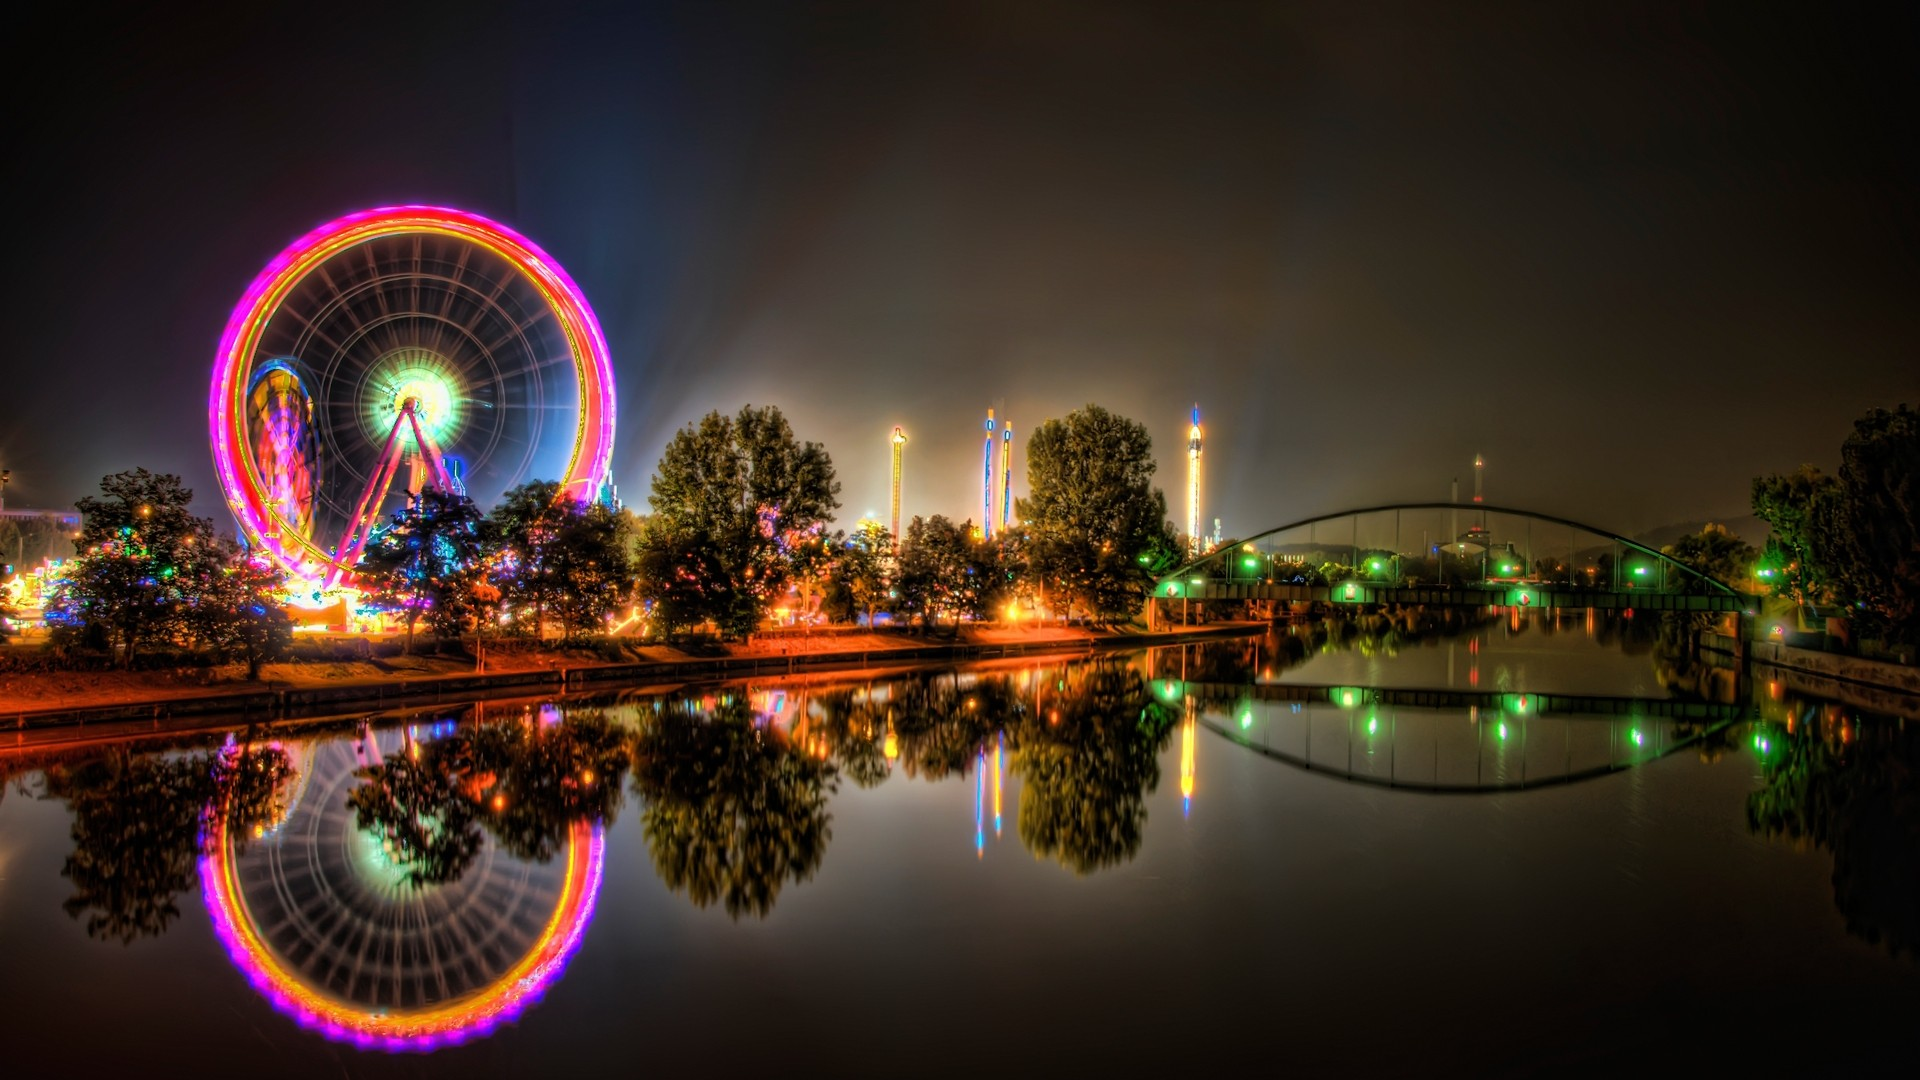 amusement-parks-by-a-river-at-night-hdr-295576.jpg